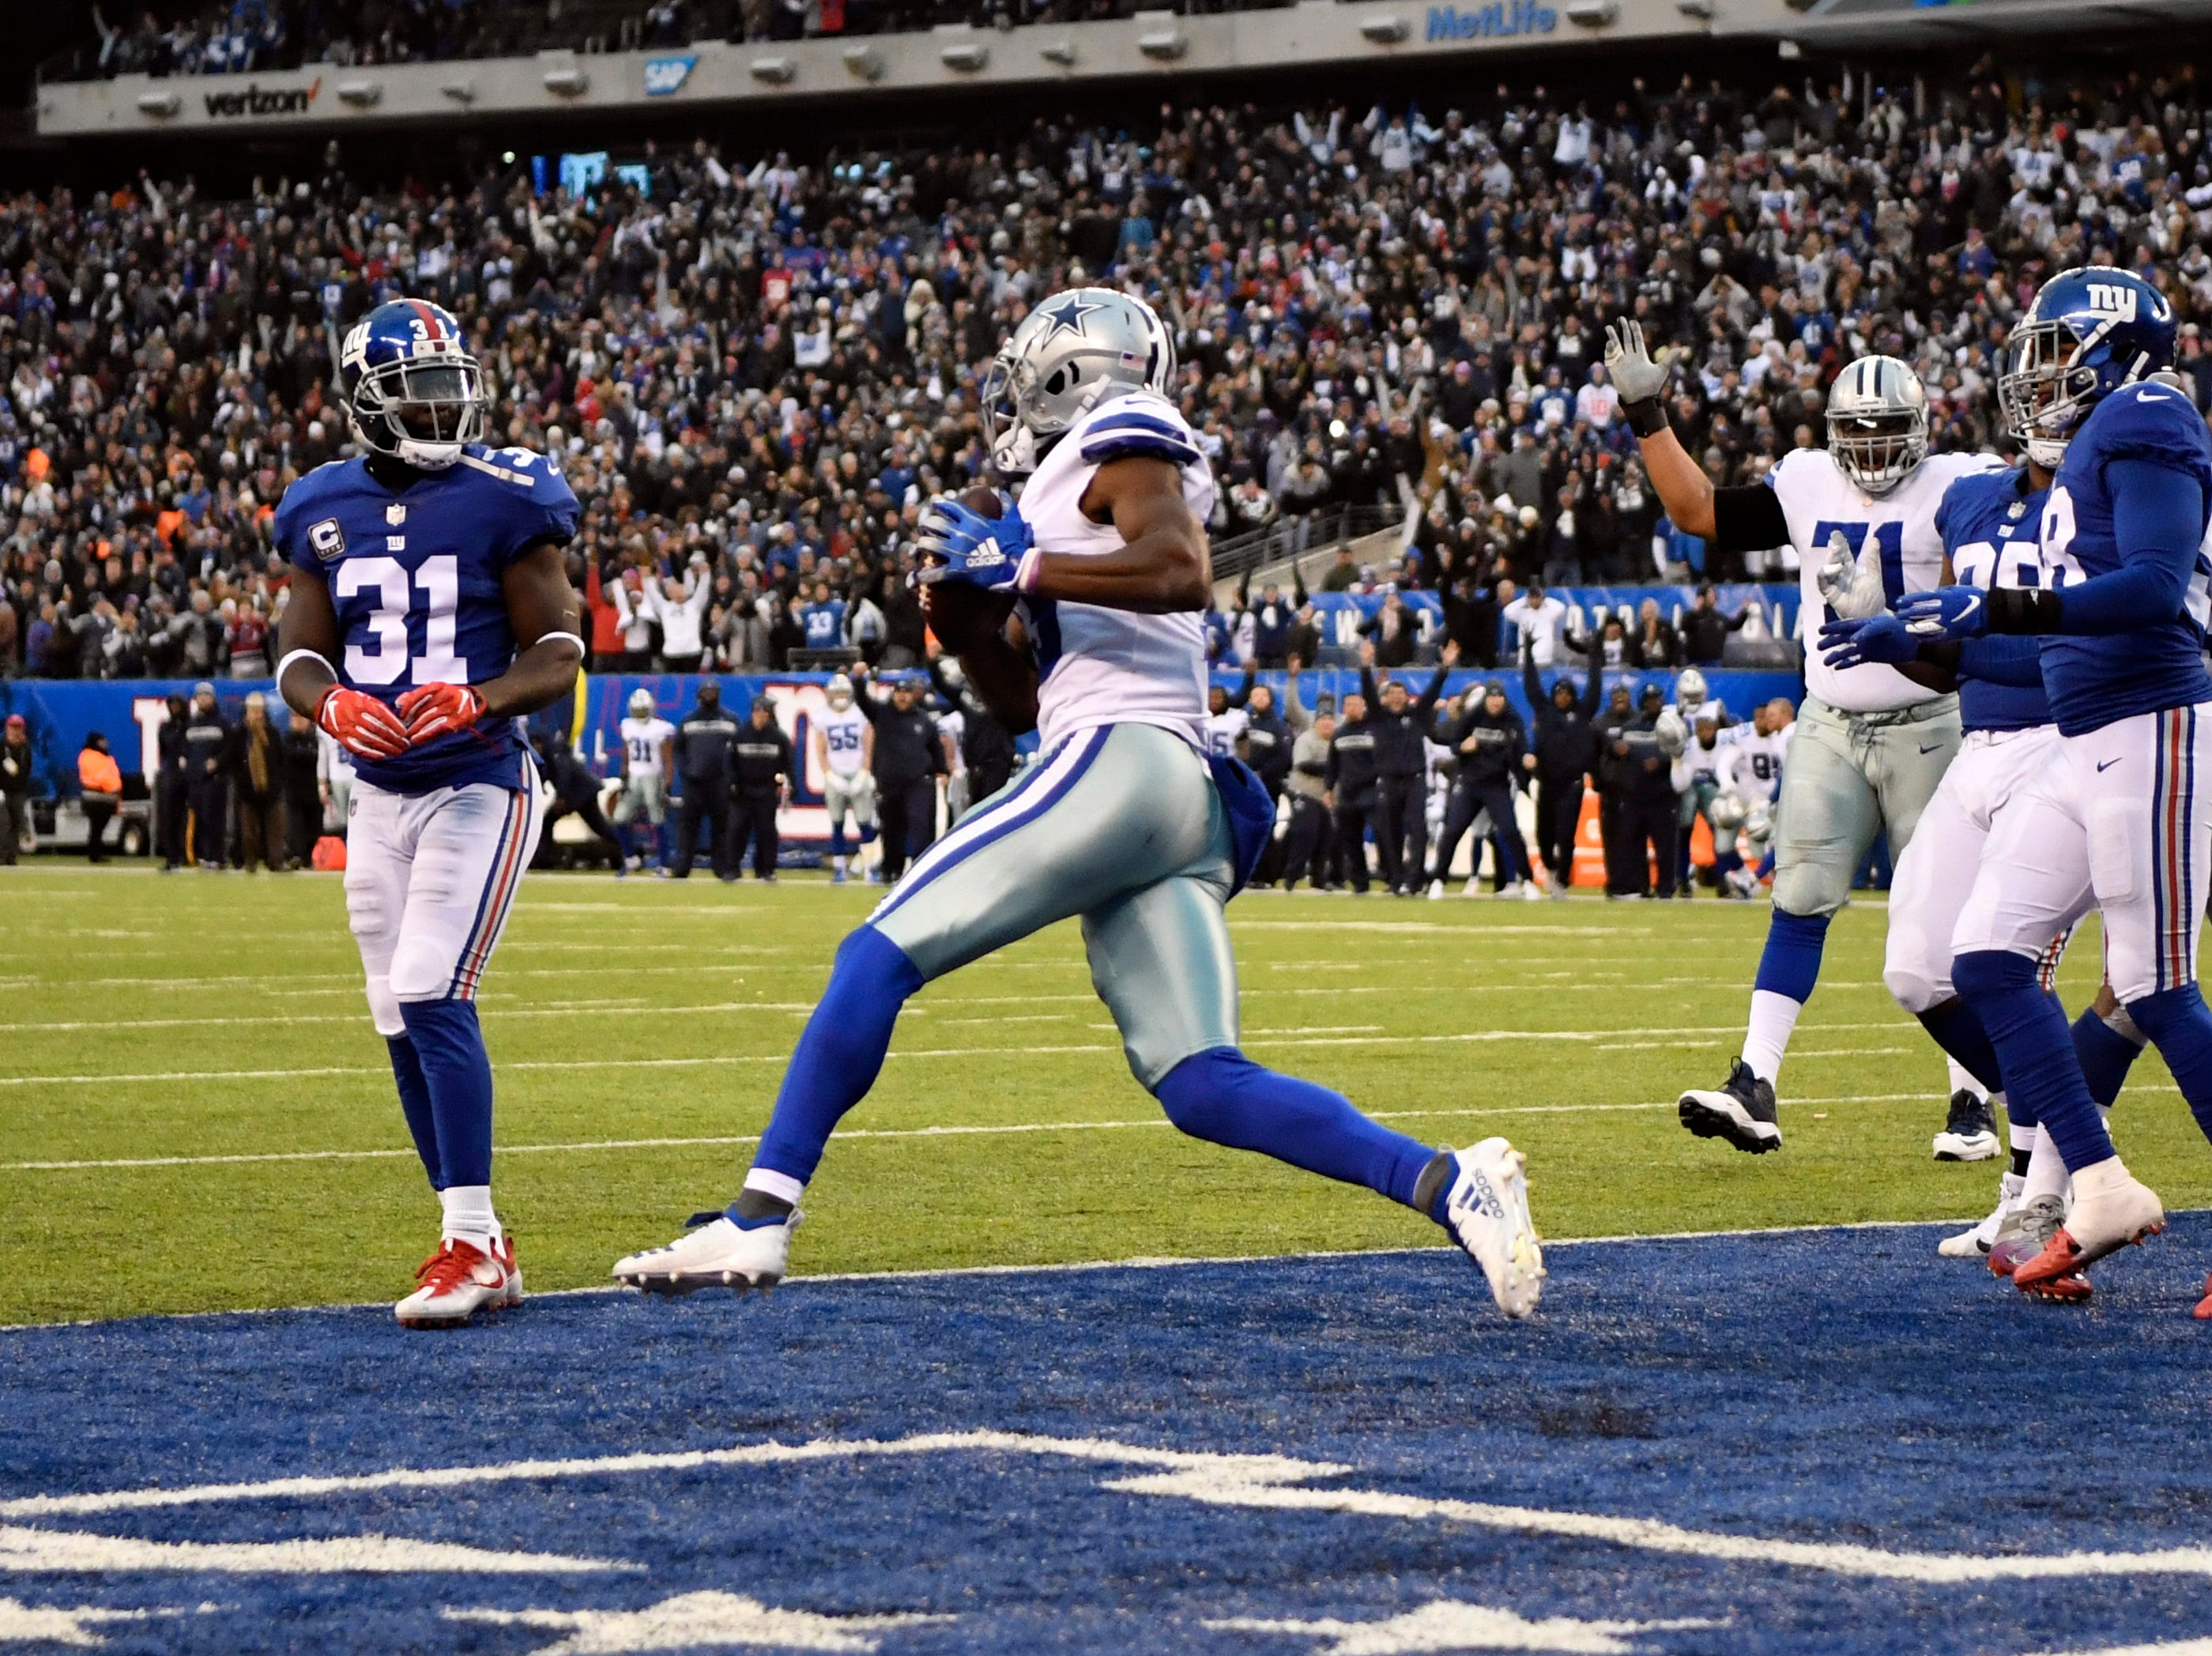 Dallas Cowboys wide receiver Michael Gallup, center, celebrates the two-point conversion, putting the Cowboys up 36-35 over the New York Giants with 1:12 left in the game.